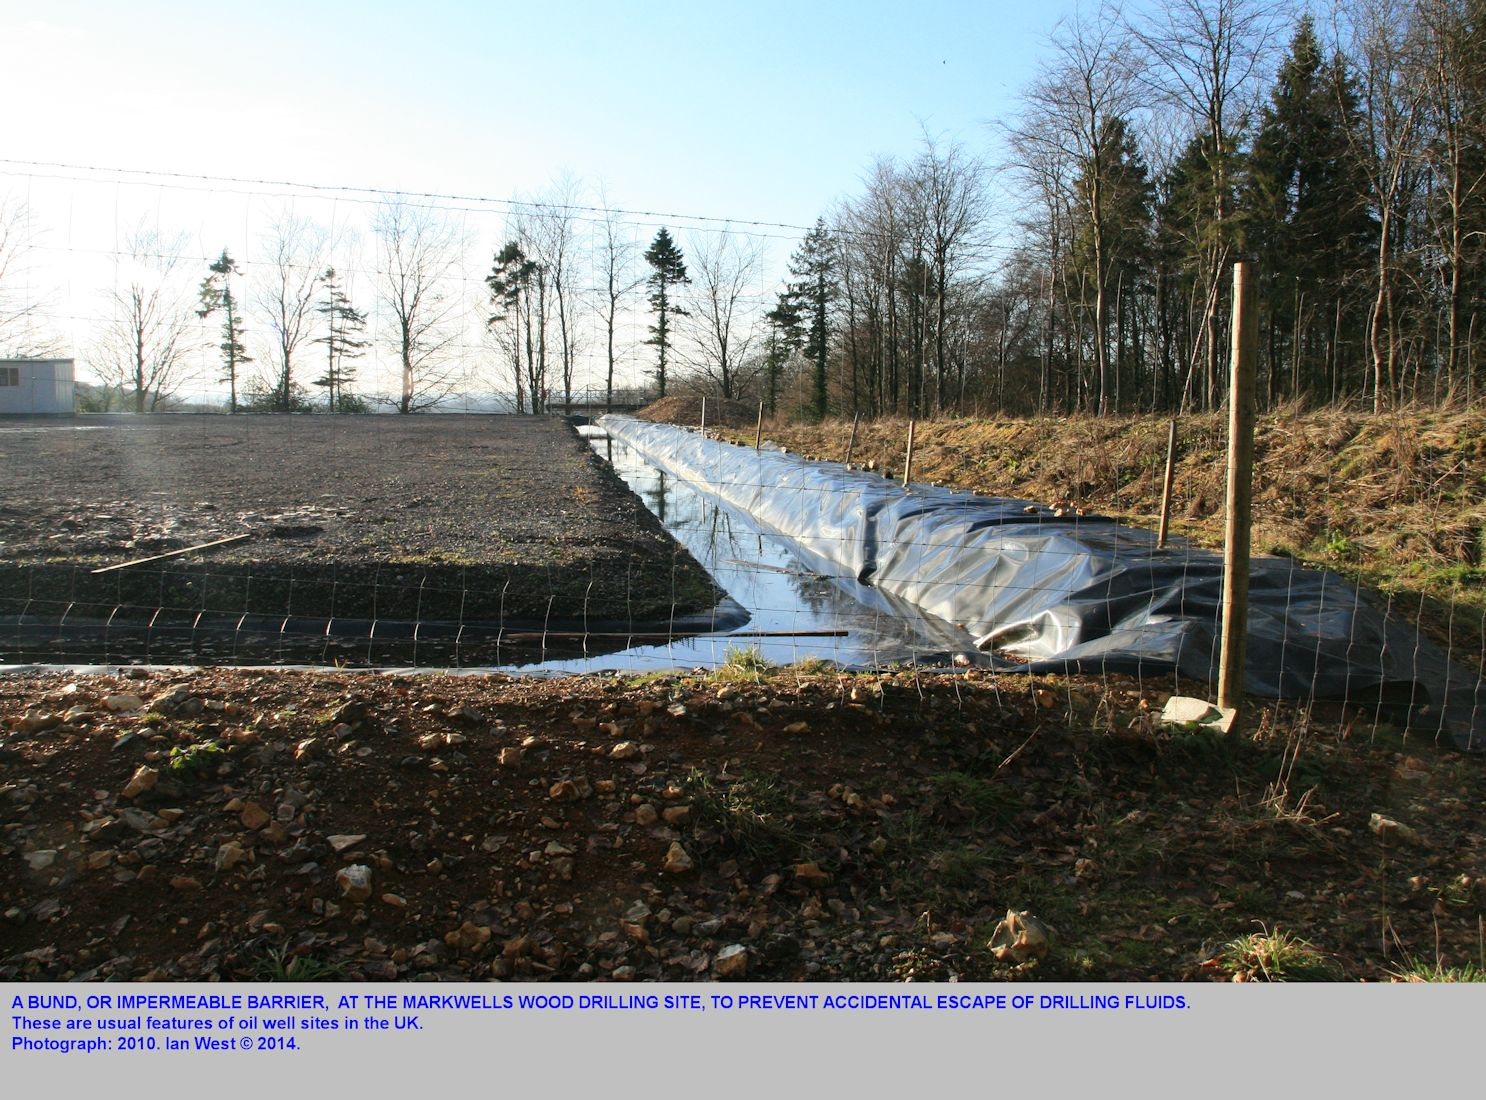 A bund or barrier around the wellsite at Markwells Wood, Sussex, 2011